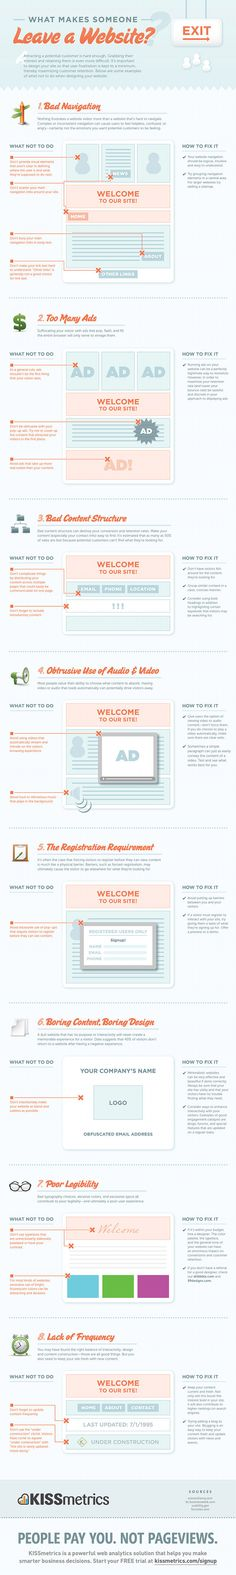 8 Reasons to leave your website